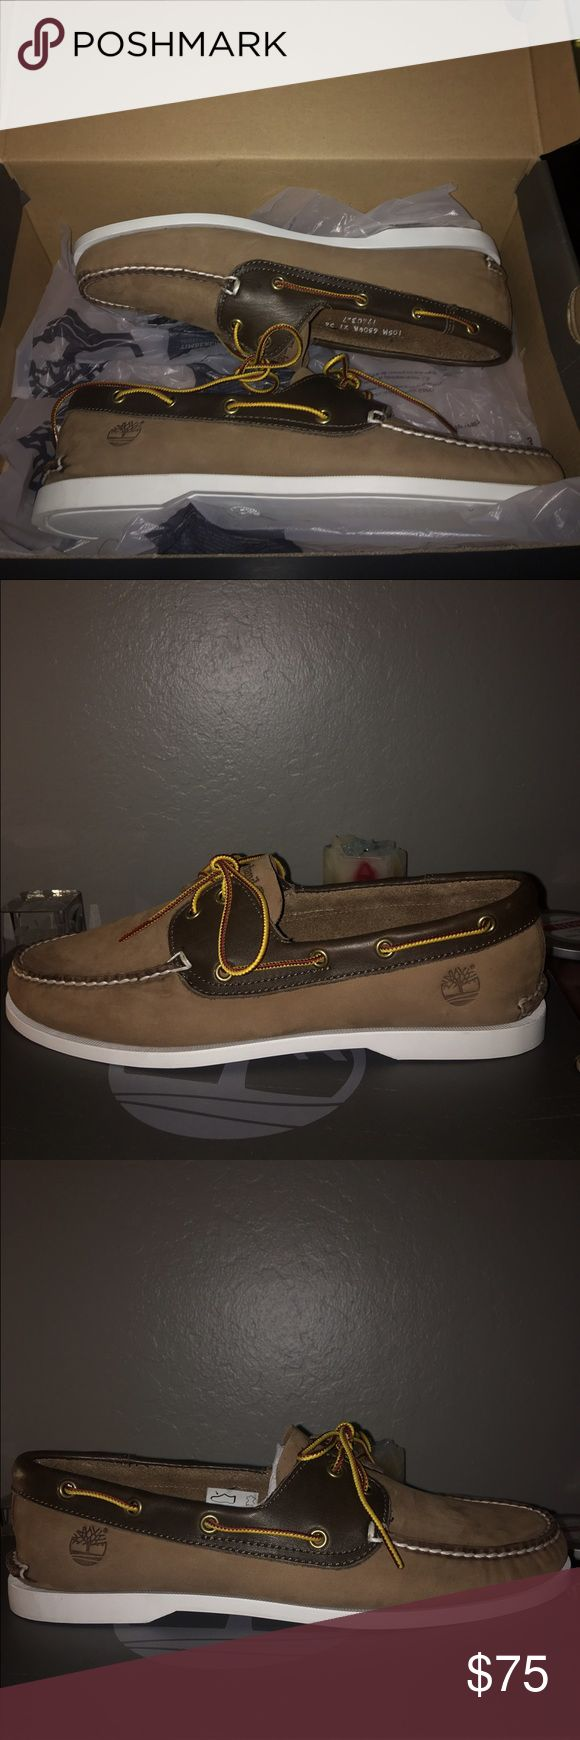 Light brown suede Timberland boat shoes Brand new and never before worn light brown suede Timberland boat shoes (PRICE IS NEGOTIABLE) #boatshoes #brownsuede #timberland #mens #shoe Timberland Shoes Boat Shoes